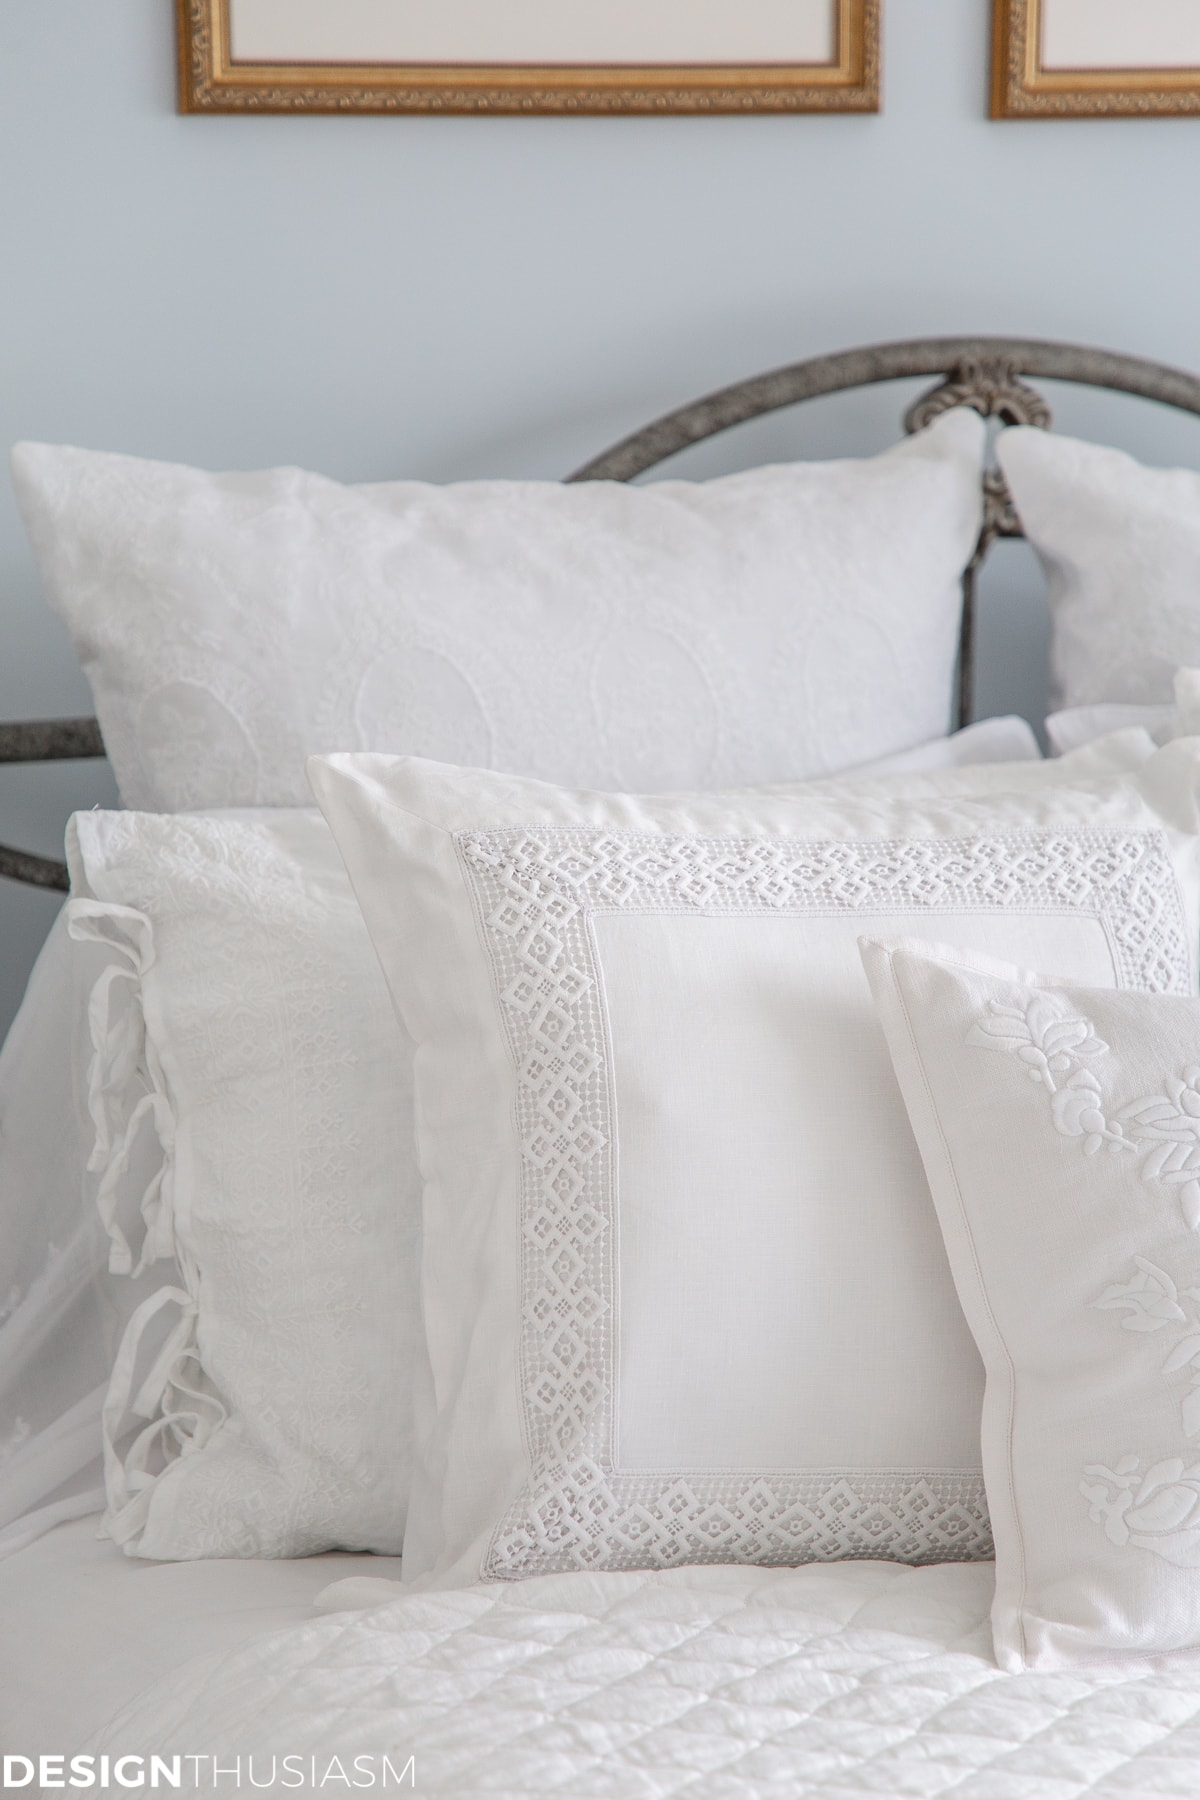 refresh your home with luxury bed linens